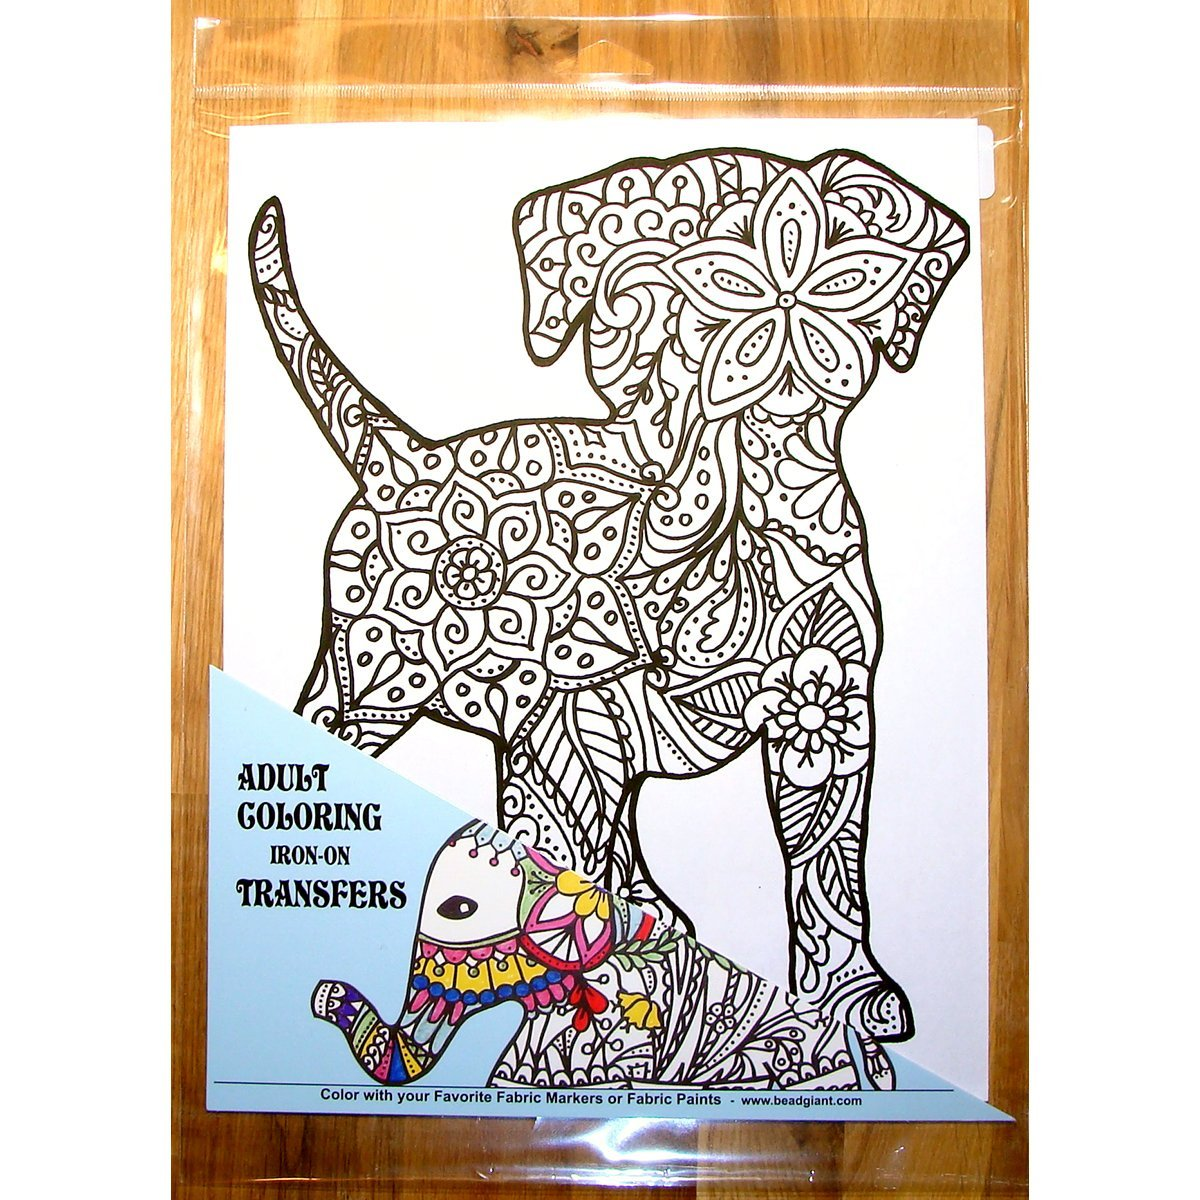 Zendoodle Iron On Transfers Adult Coloring Iron On Transfer Puppy Giraffe Crafts 28112